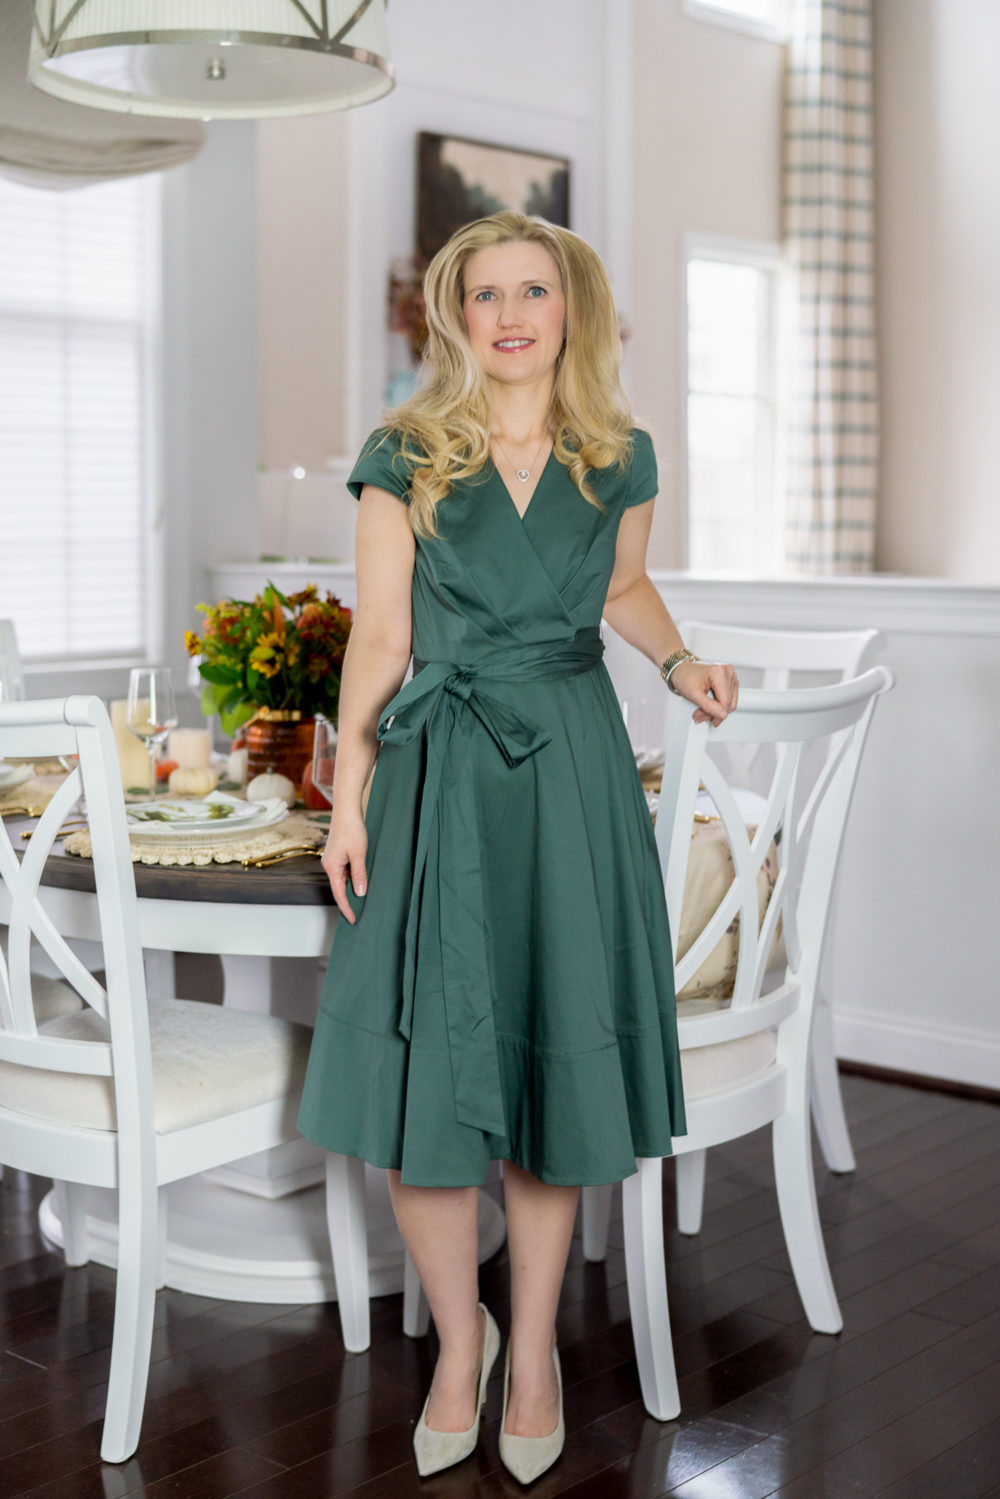 Petite Fashion Blog | Addison Cotton Tie Waist Fit & Flare Wrap Dress | FTD Flowers | FTD Thanksgiving Bouquet | Thanksgiving table decor | Thanksgiving tablescape | Pumpkin Pie recipe | Gal Meets Glam Dress